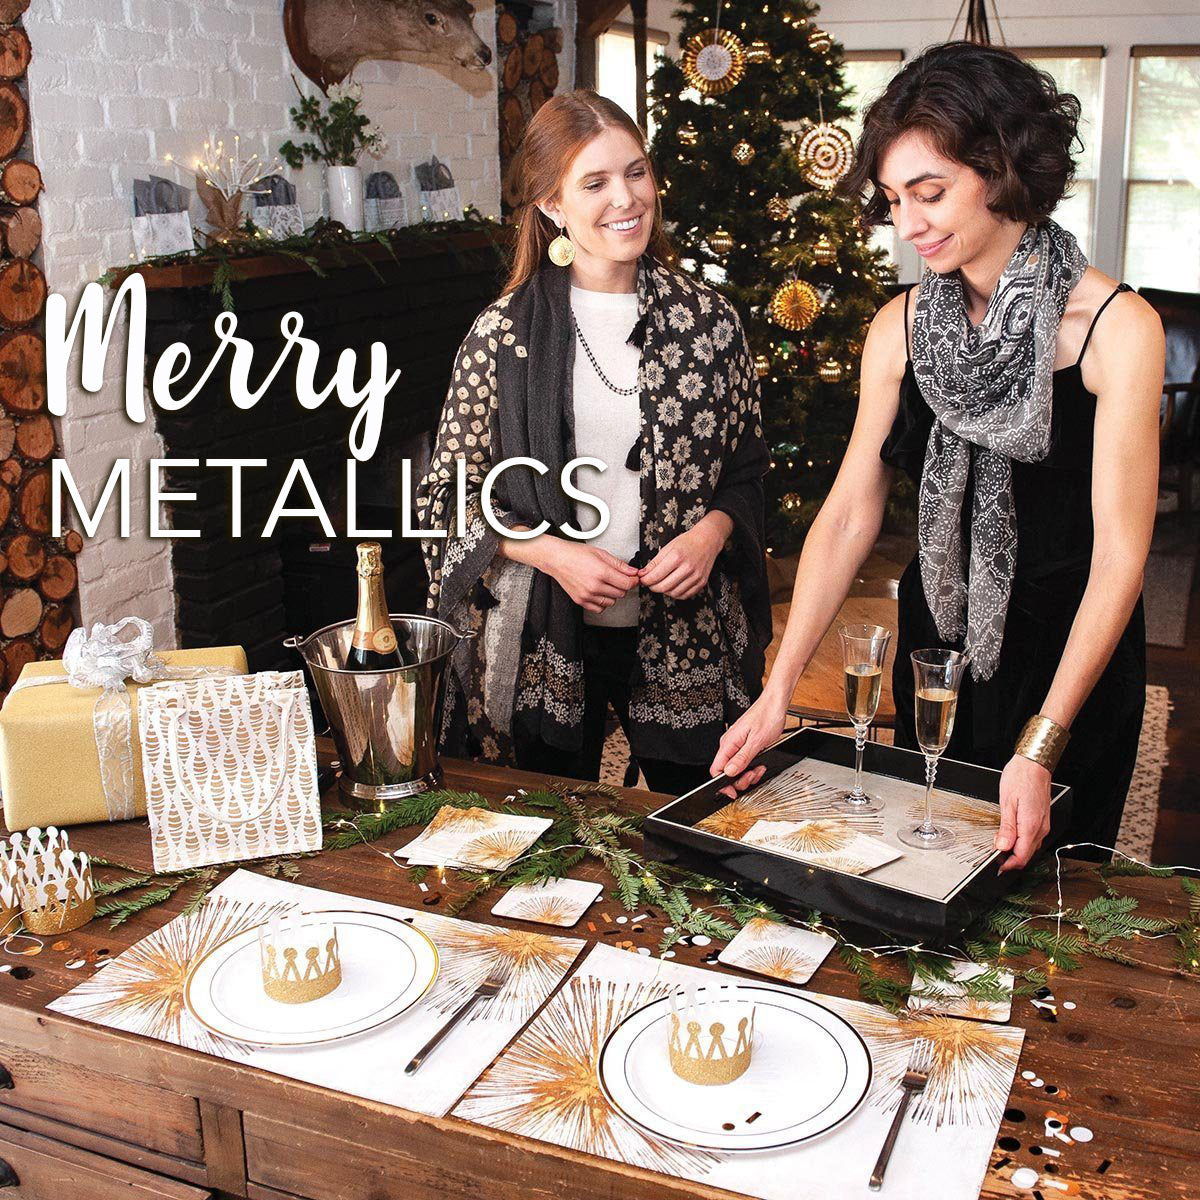 Metallic Home Decor for Holiday Entertaining